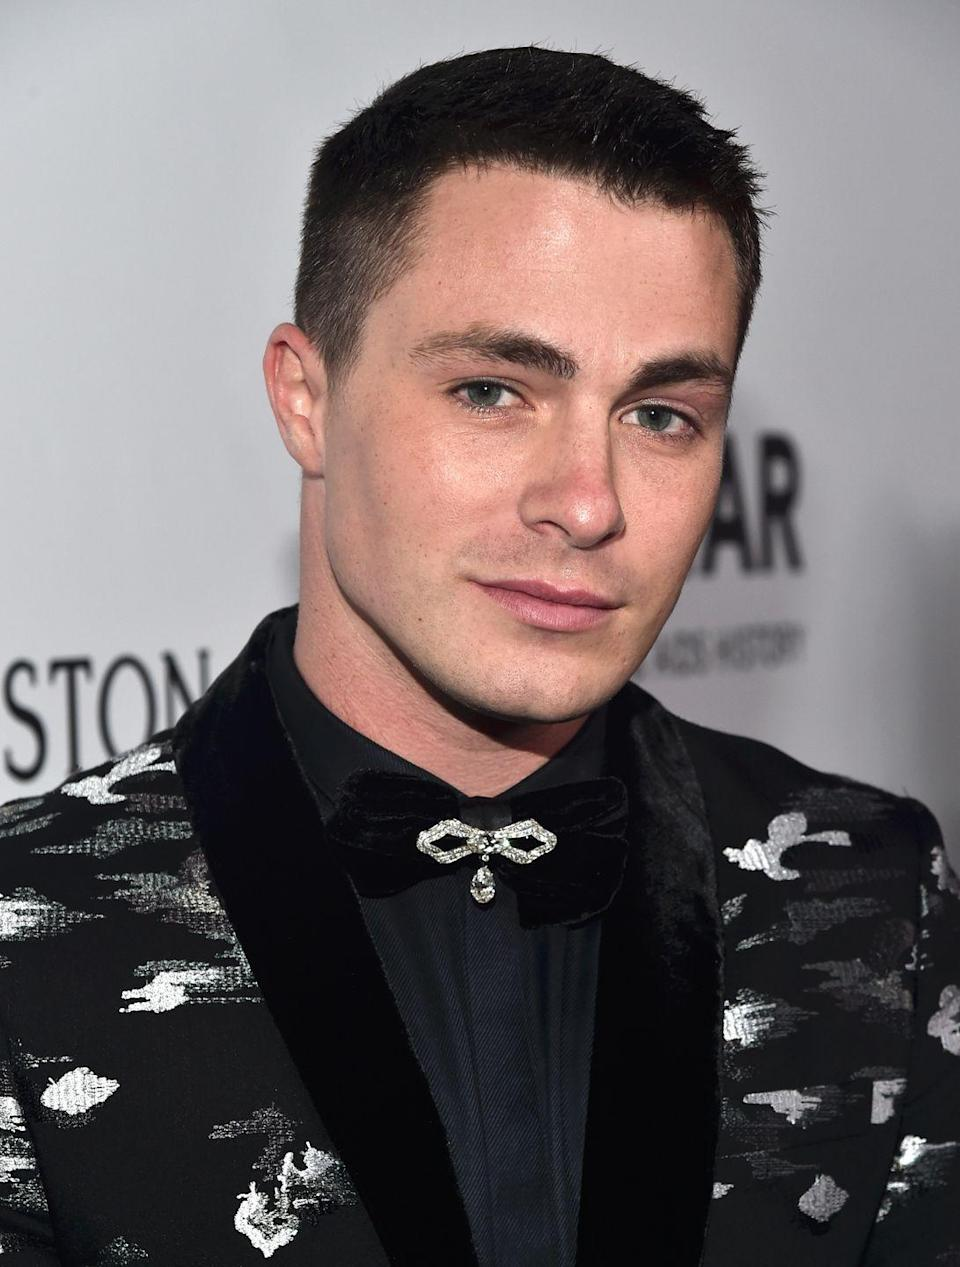 "<p>In 2017, the <em>Teen Wolf</em> actor opened up about his mental health in an Instagram post. ""I've talked about this before but I can't stress enough how important it is to seek help when you're feeling down or in your darkest moments,"" <a href=""https://www.instagram.com/p/BaFPyu6Dty2/?utm_source=ig_embed"" rel=""nofollow noopener"" target=""_blank"" data-ylk=""slk:Haynes captioned the post"" class=""link rapid-noclick-resp"">Haynes captioned the post</a>. ""I've struggled with anxiety and depression since I was in the 5th grade and it's not something that should go untreated or uncared for."" He continued his post by encouraging fans to reach out to people in need of help and encouragement.</p>"